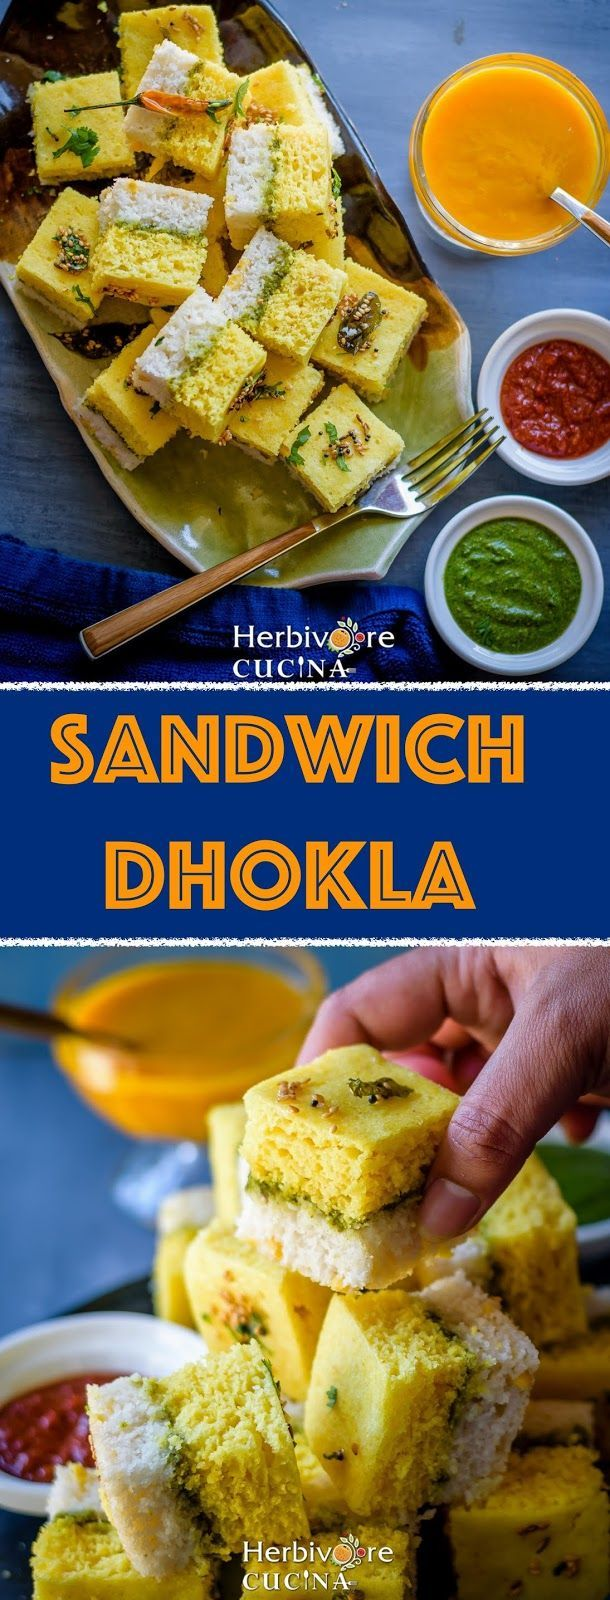 Sandwich Dhokla Herbivore Cucina: Sandwich Dhokla   Layered Savory Steamed Cakes...A perfect snack or appetizer, Sandwich Dhokla combines two Indian favorites to make a yummy recipe! Dunk them in chutney or enjoy with chai!